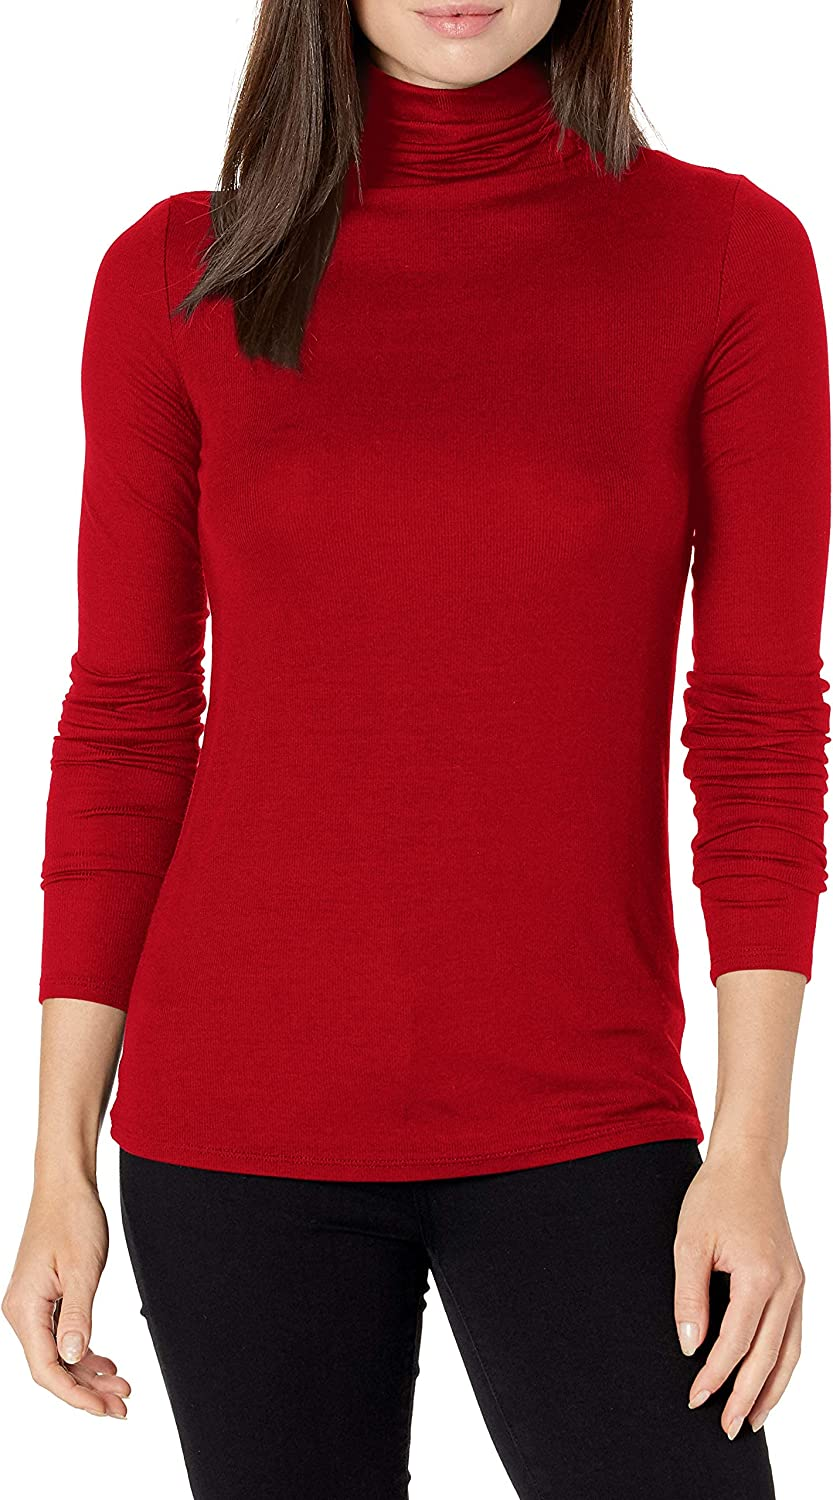 AG OFFicial mail order Adriano Goldschmied San Francisco Mall Turtleneck Chels Women's